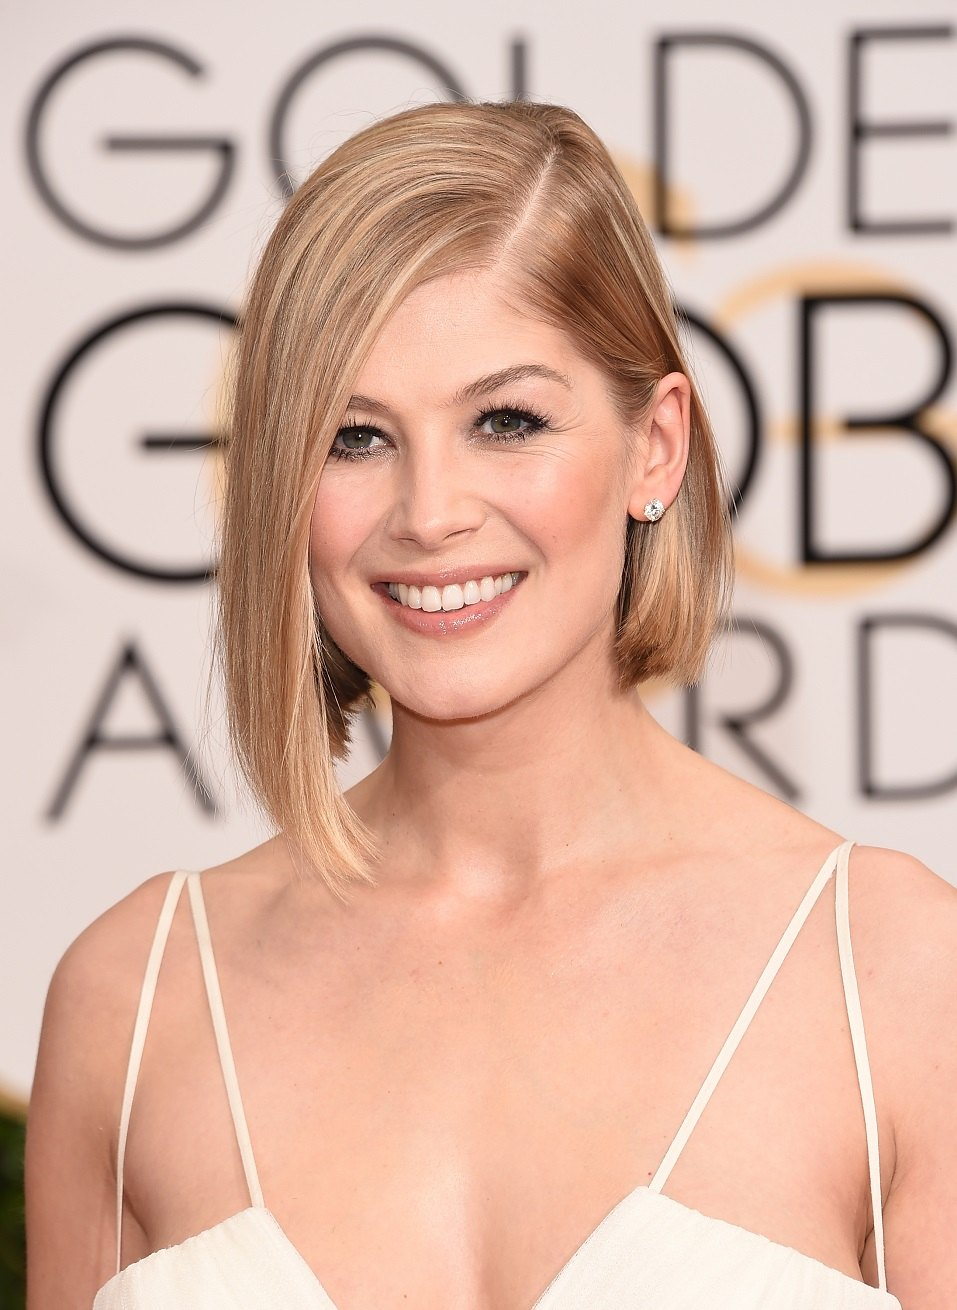 The 10 Best Hair Styles for Thin Hair